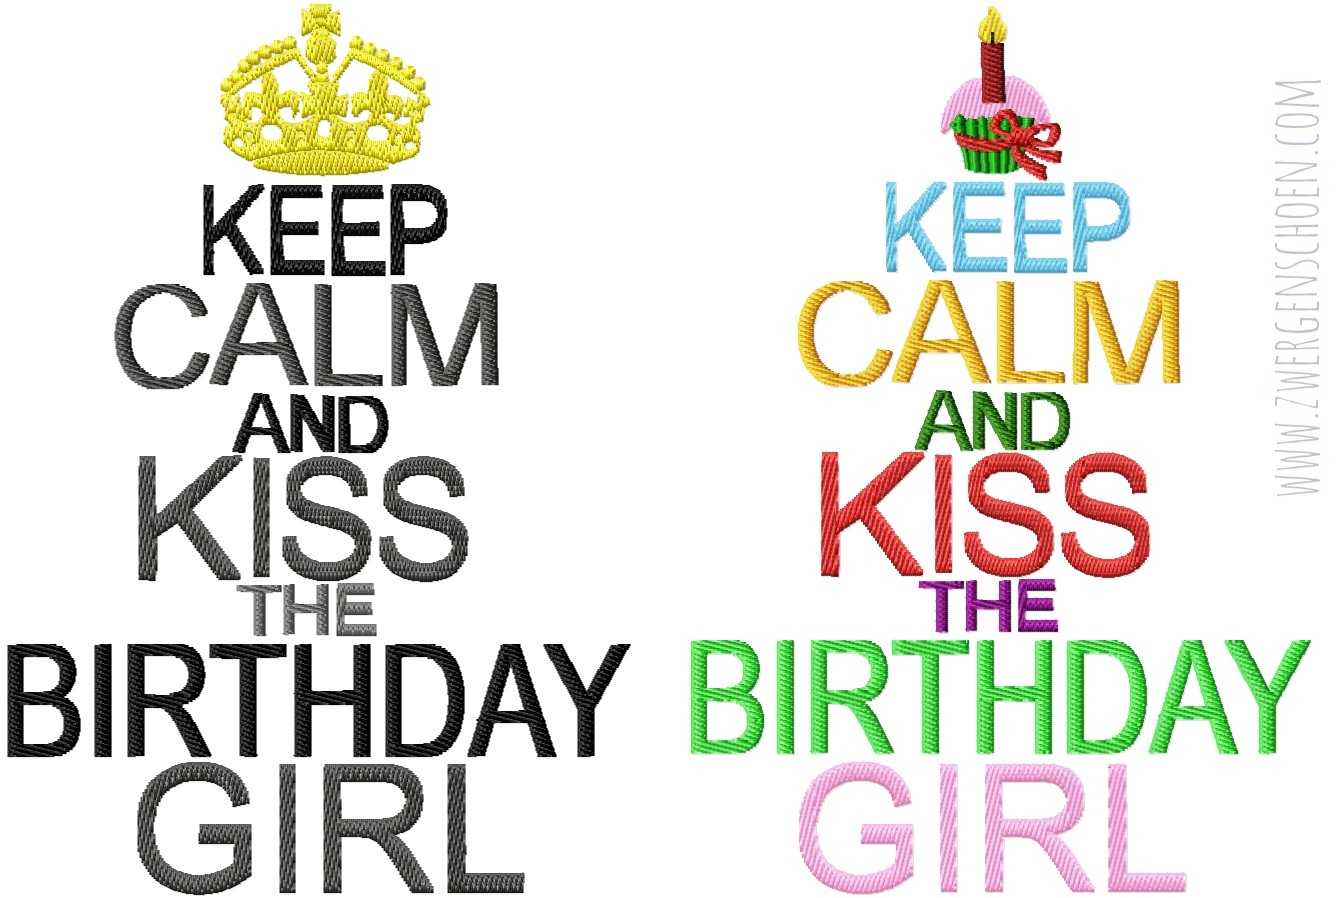 ♥KEEP CALM and KISS the BIRTHDAY GIRL♥ Stickdatei 13x18 20x26cm 1€-SPARbie